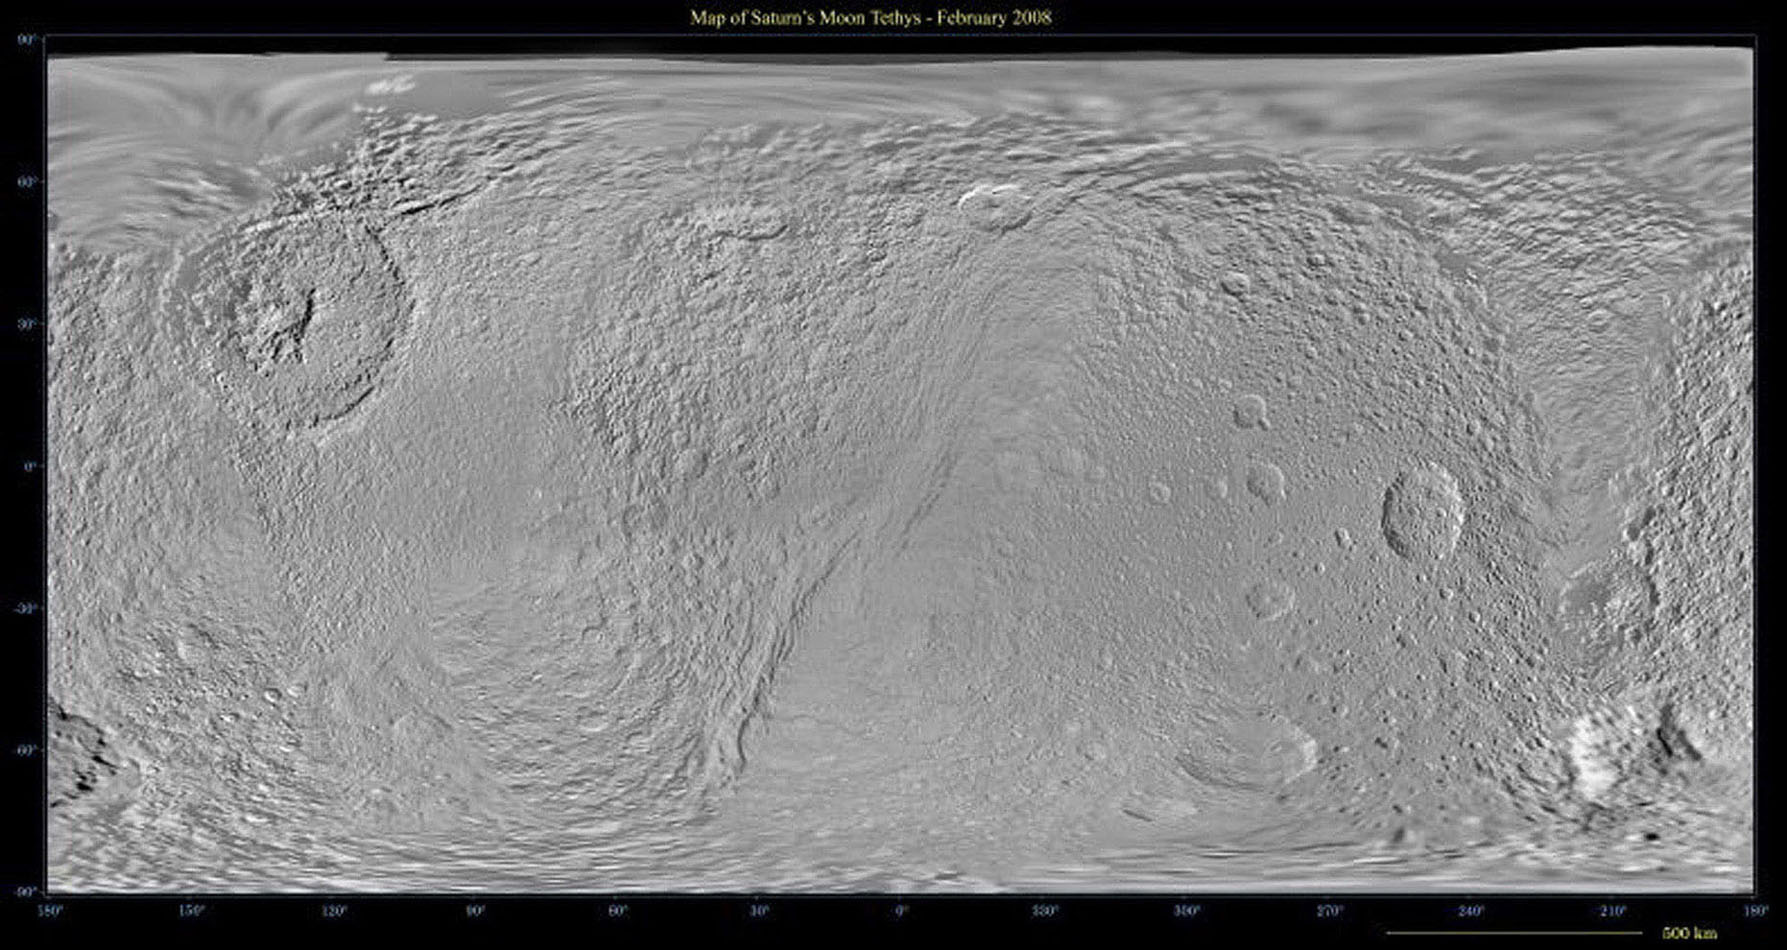 This global map of Saturn's moon Tethys was created using images taken during NASA's Cassini spacecraft's flybys, with Voyager images filling in the gaps in Cassini's coverage.